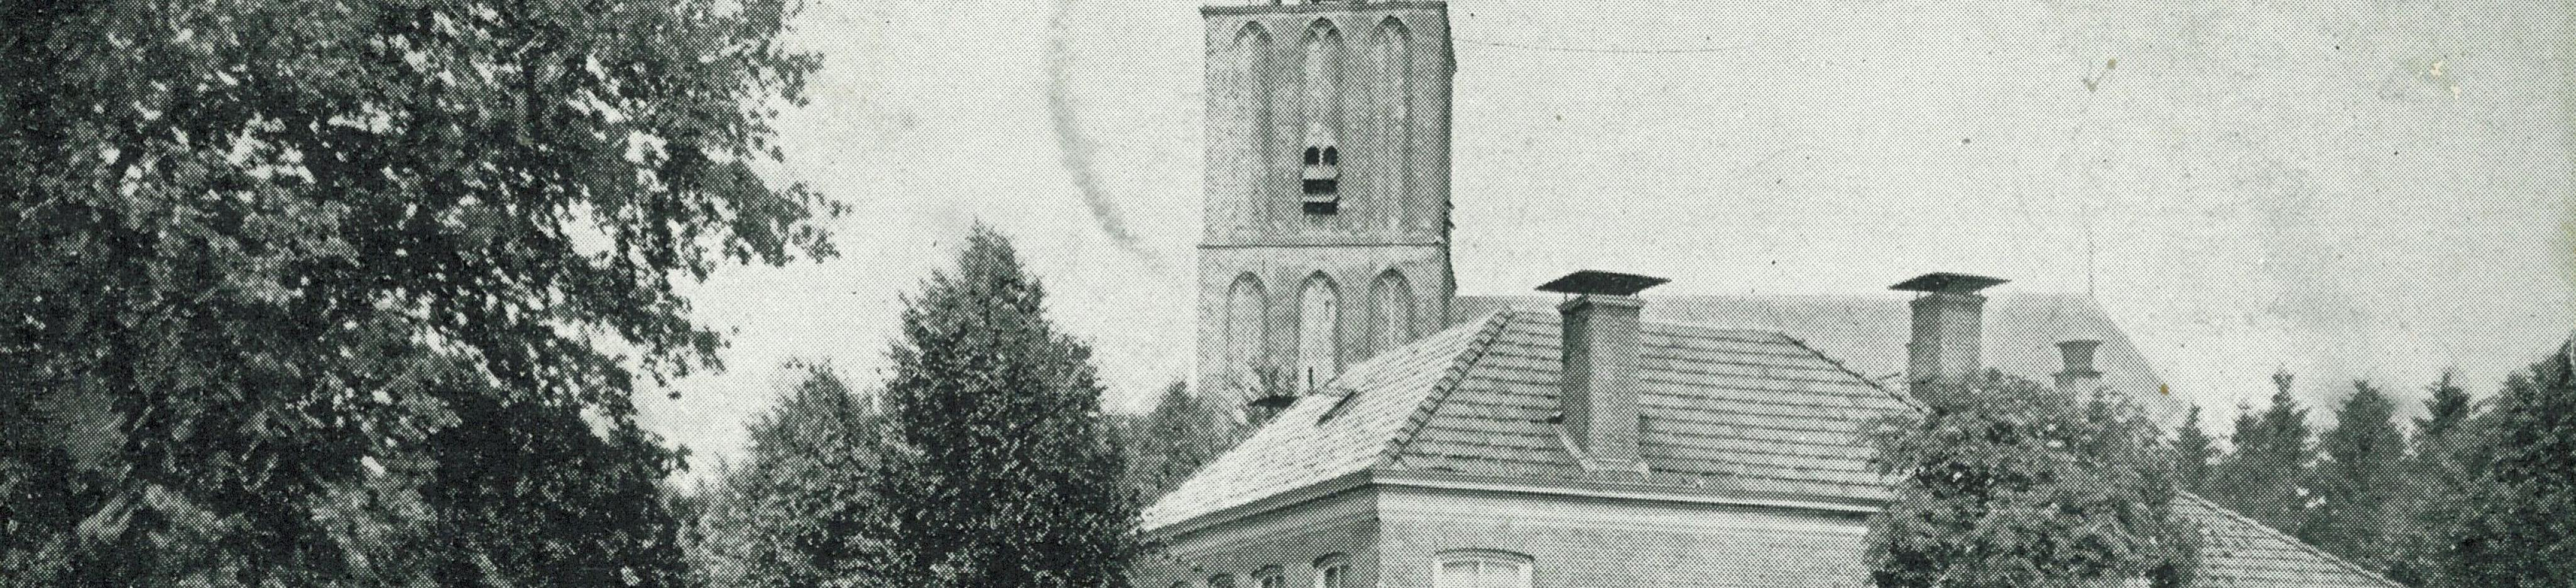 Sleen - Brink met kerktoren